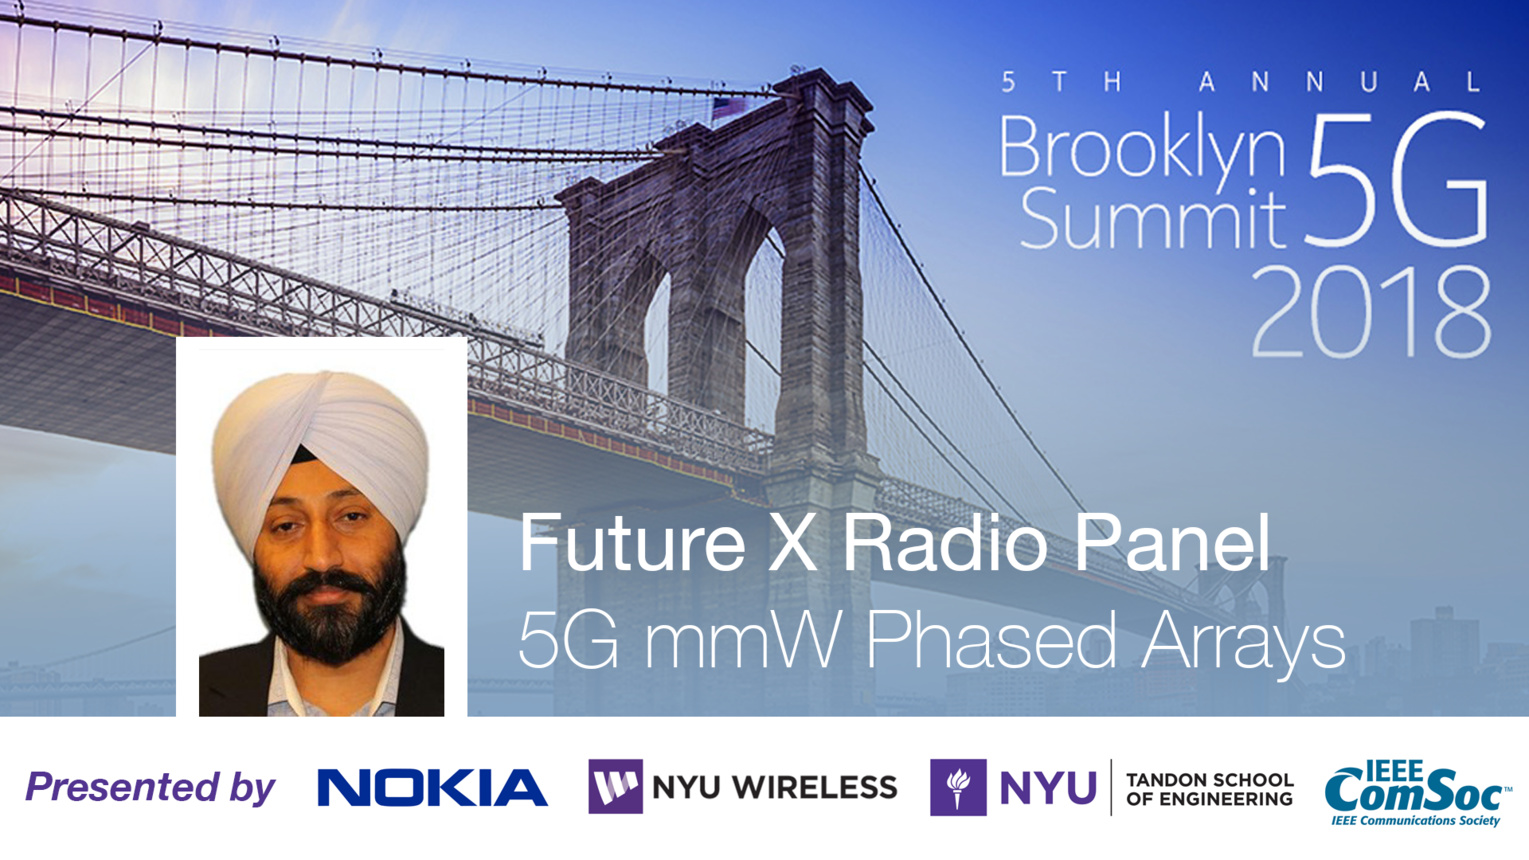 5G mmW Phased Arrays - Future X Radio Panel Talk - Baljit Singh - Brooklyn 5G Summit 2018